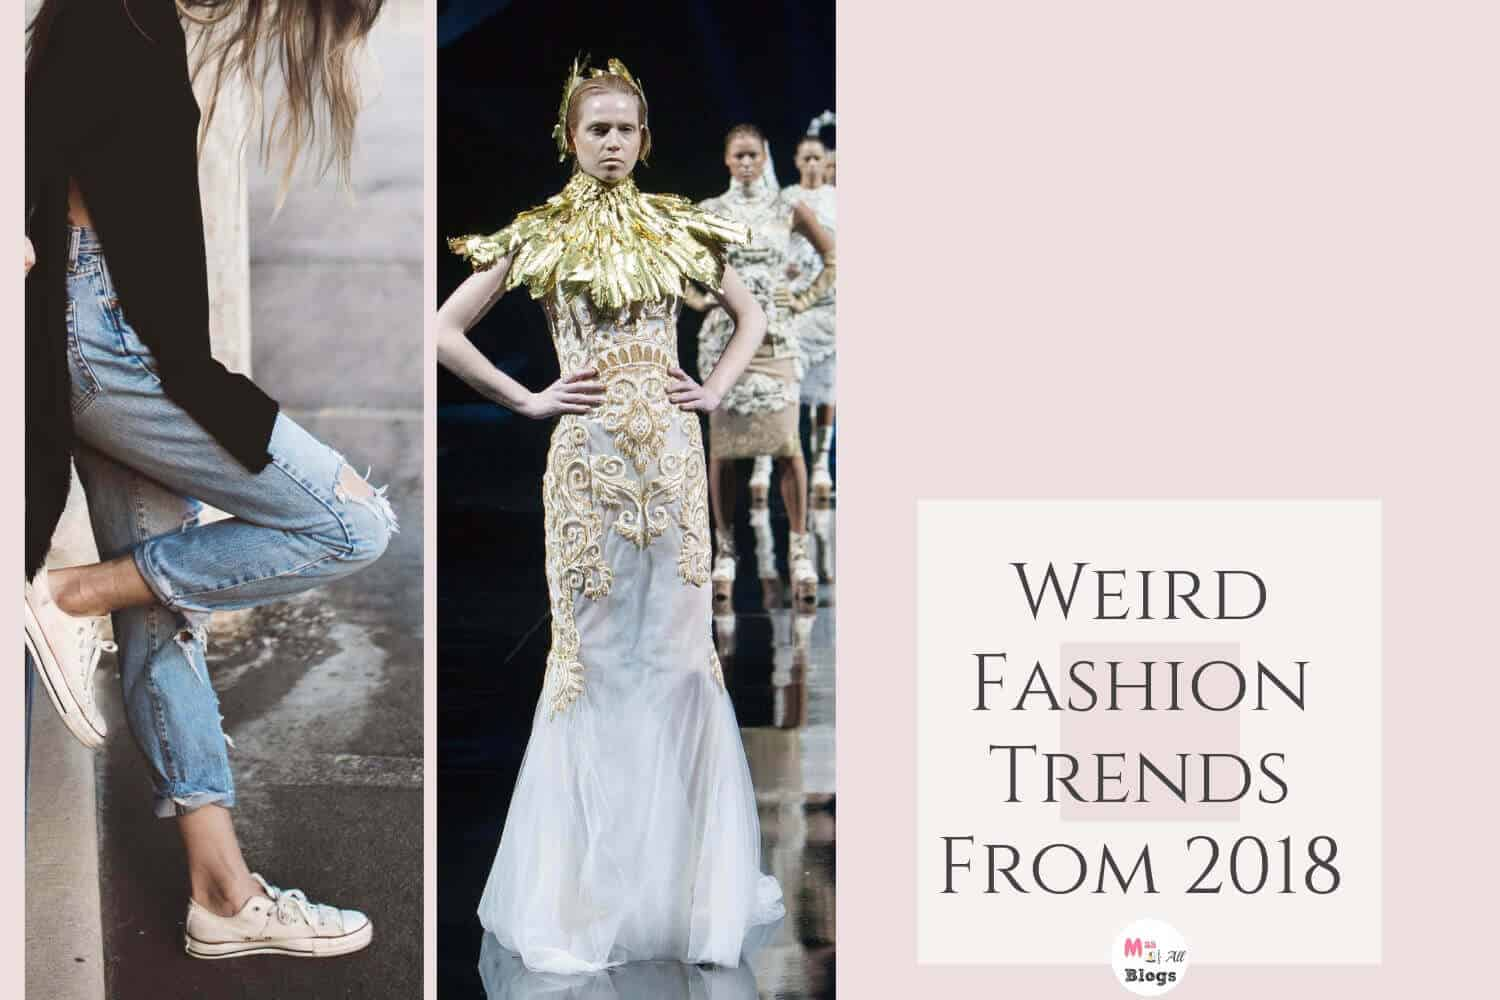 Weird Fashion Trends From 2018 Beyond My Comprehension